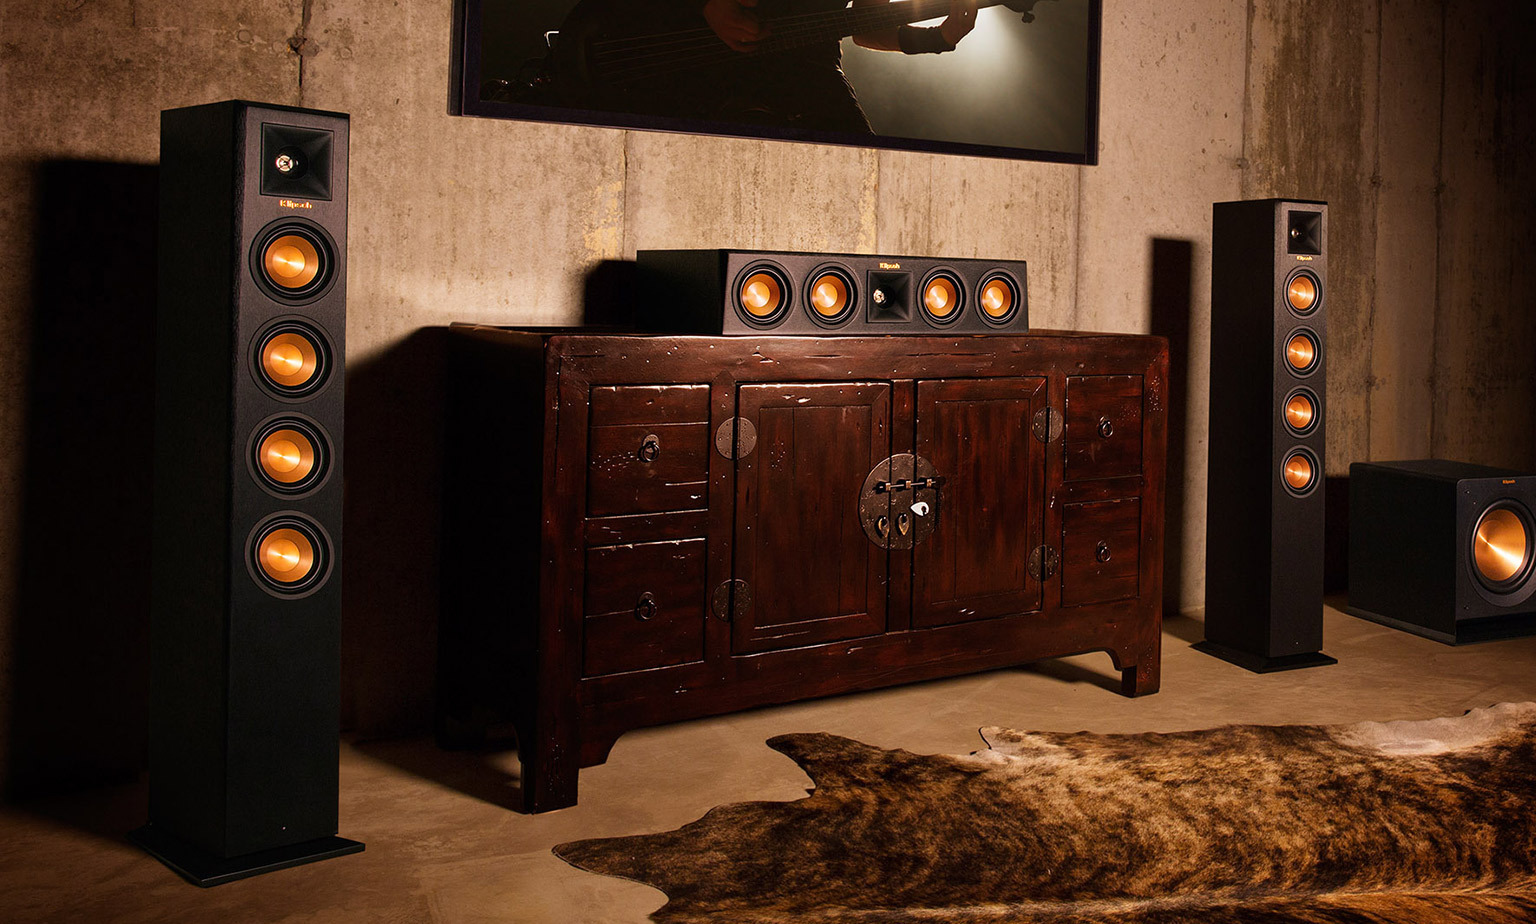 Save on Klipsch, Pro-Ject, Marantz and more